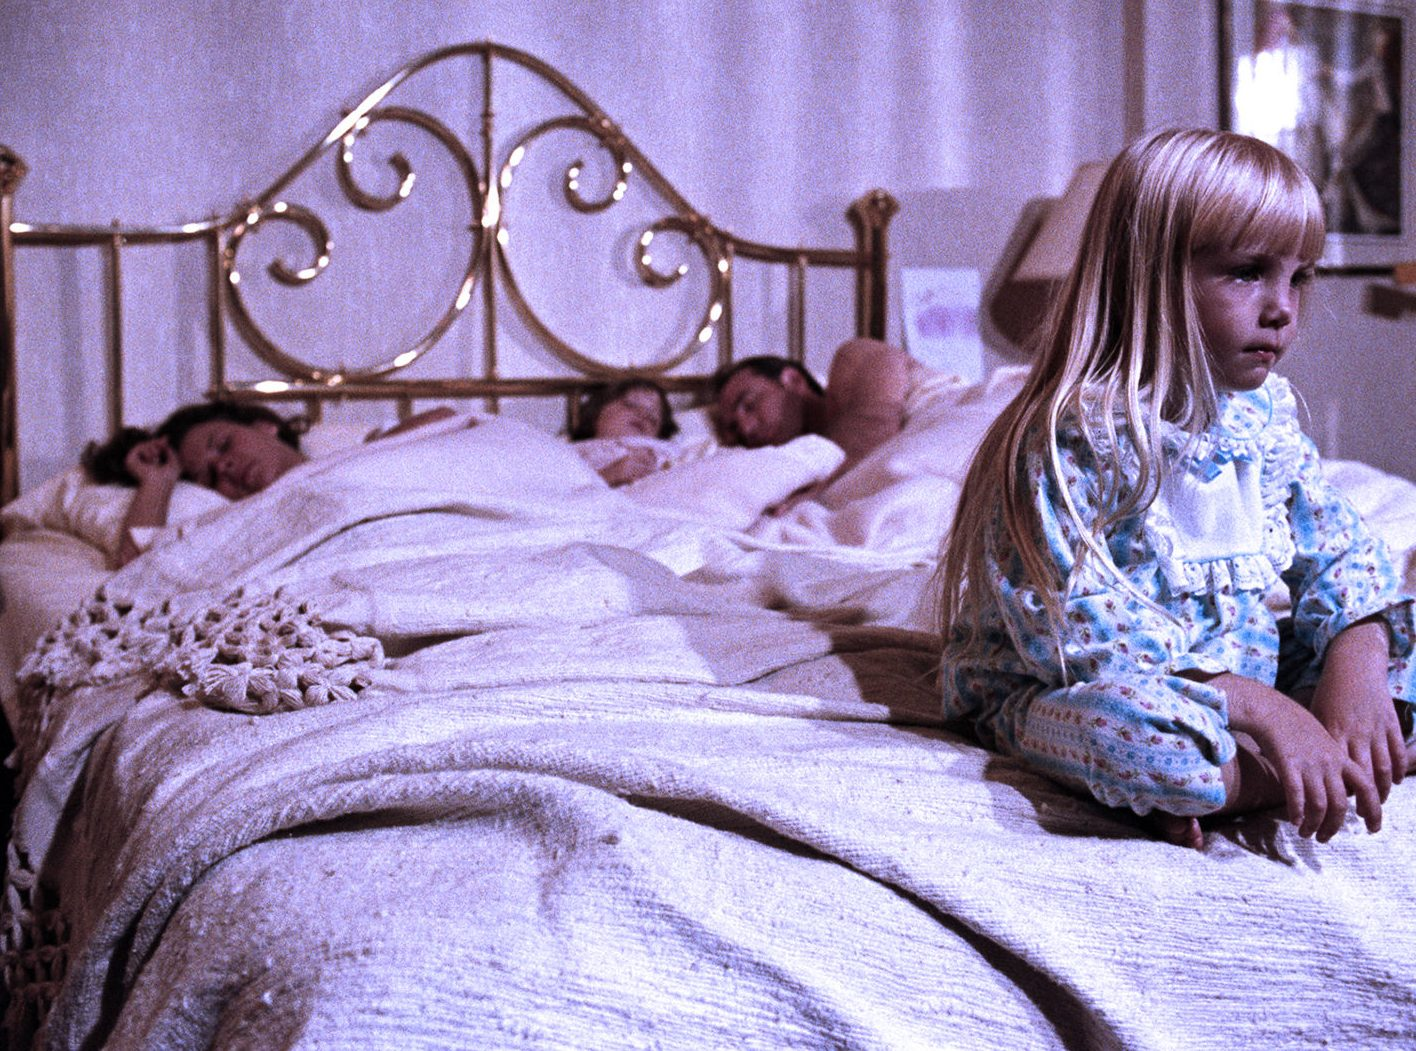 poltergeist 1982 photo 39 e1607944902292 20 Things You Never Knew About E.T. The Extra-Terrestrial